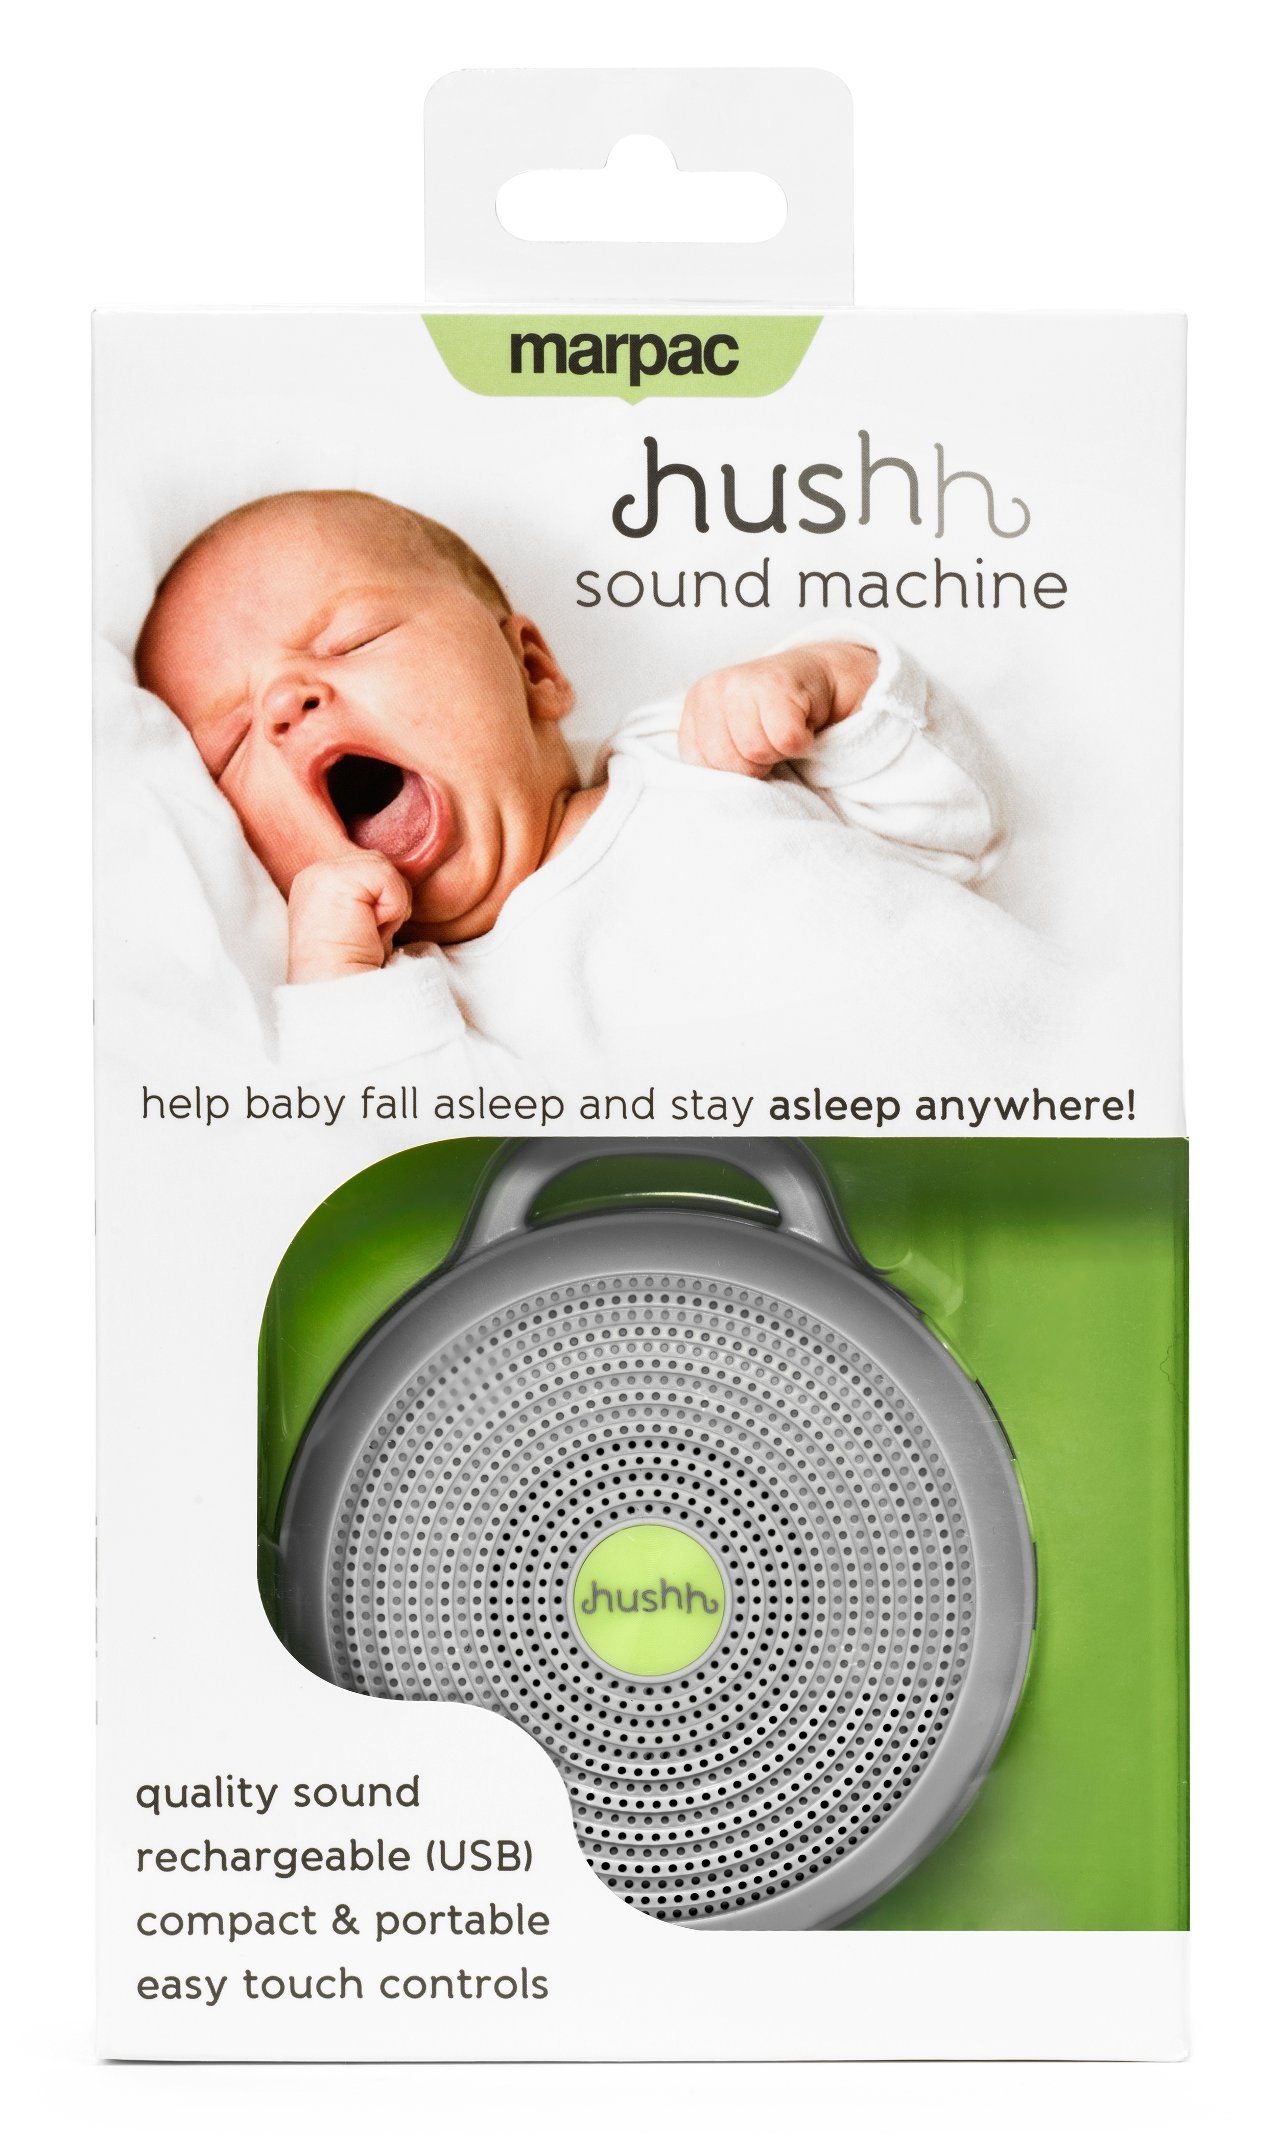 Quirks Marketing Philippines - Marpac Hushh Portable White Noise Sound Machine for Babies